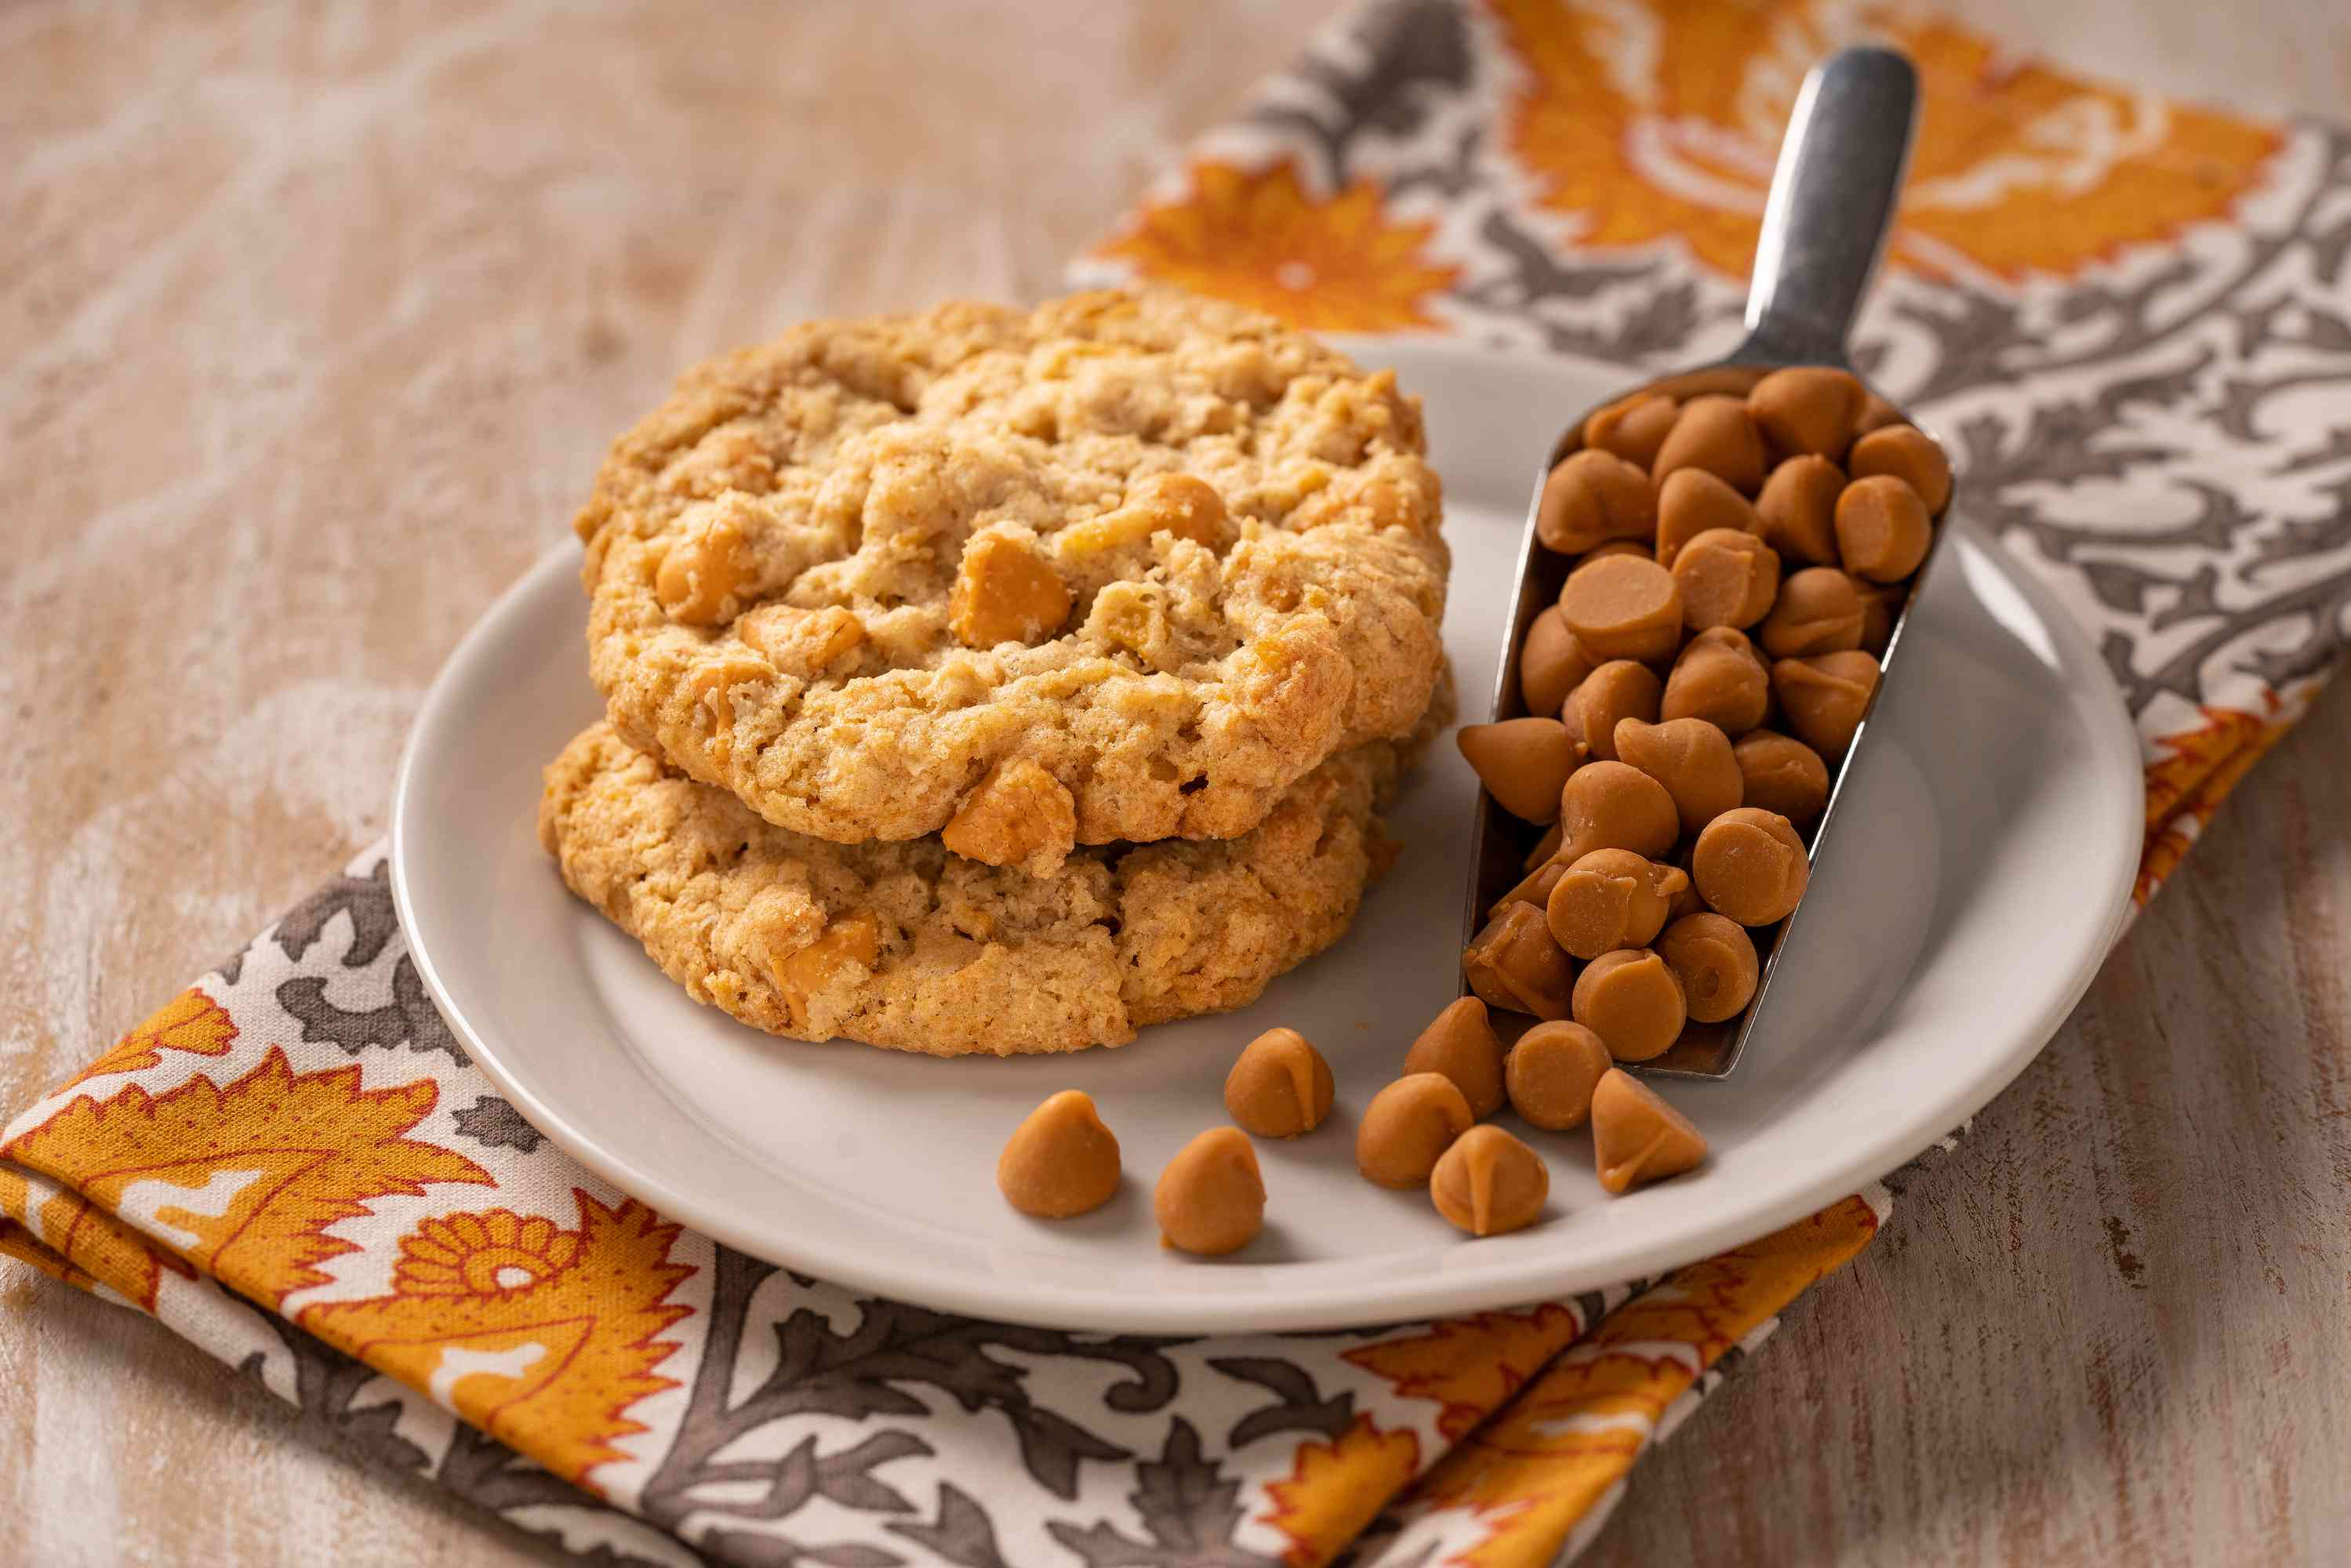 Butterscotch cookies on a serving plate with a scoopful of butterscotch chips on the side